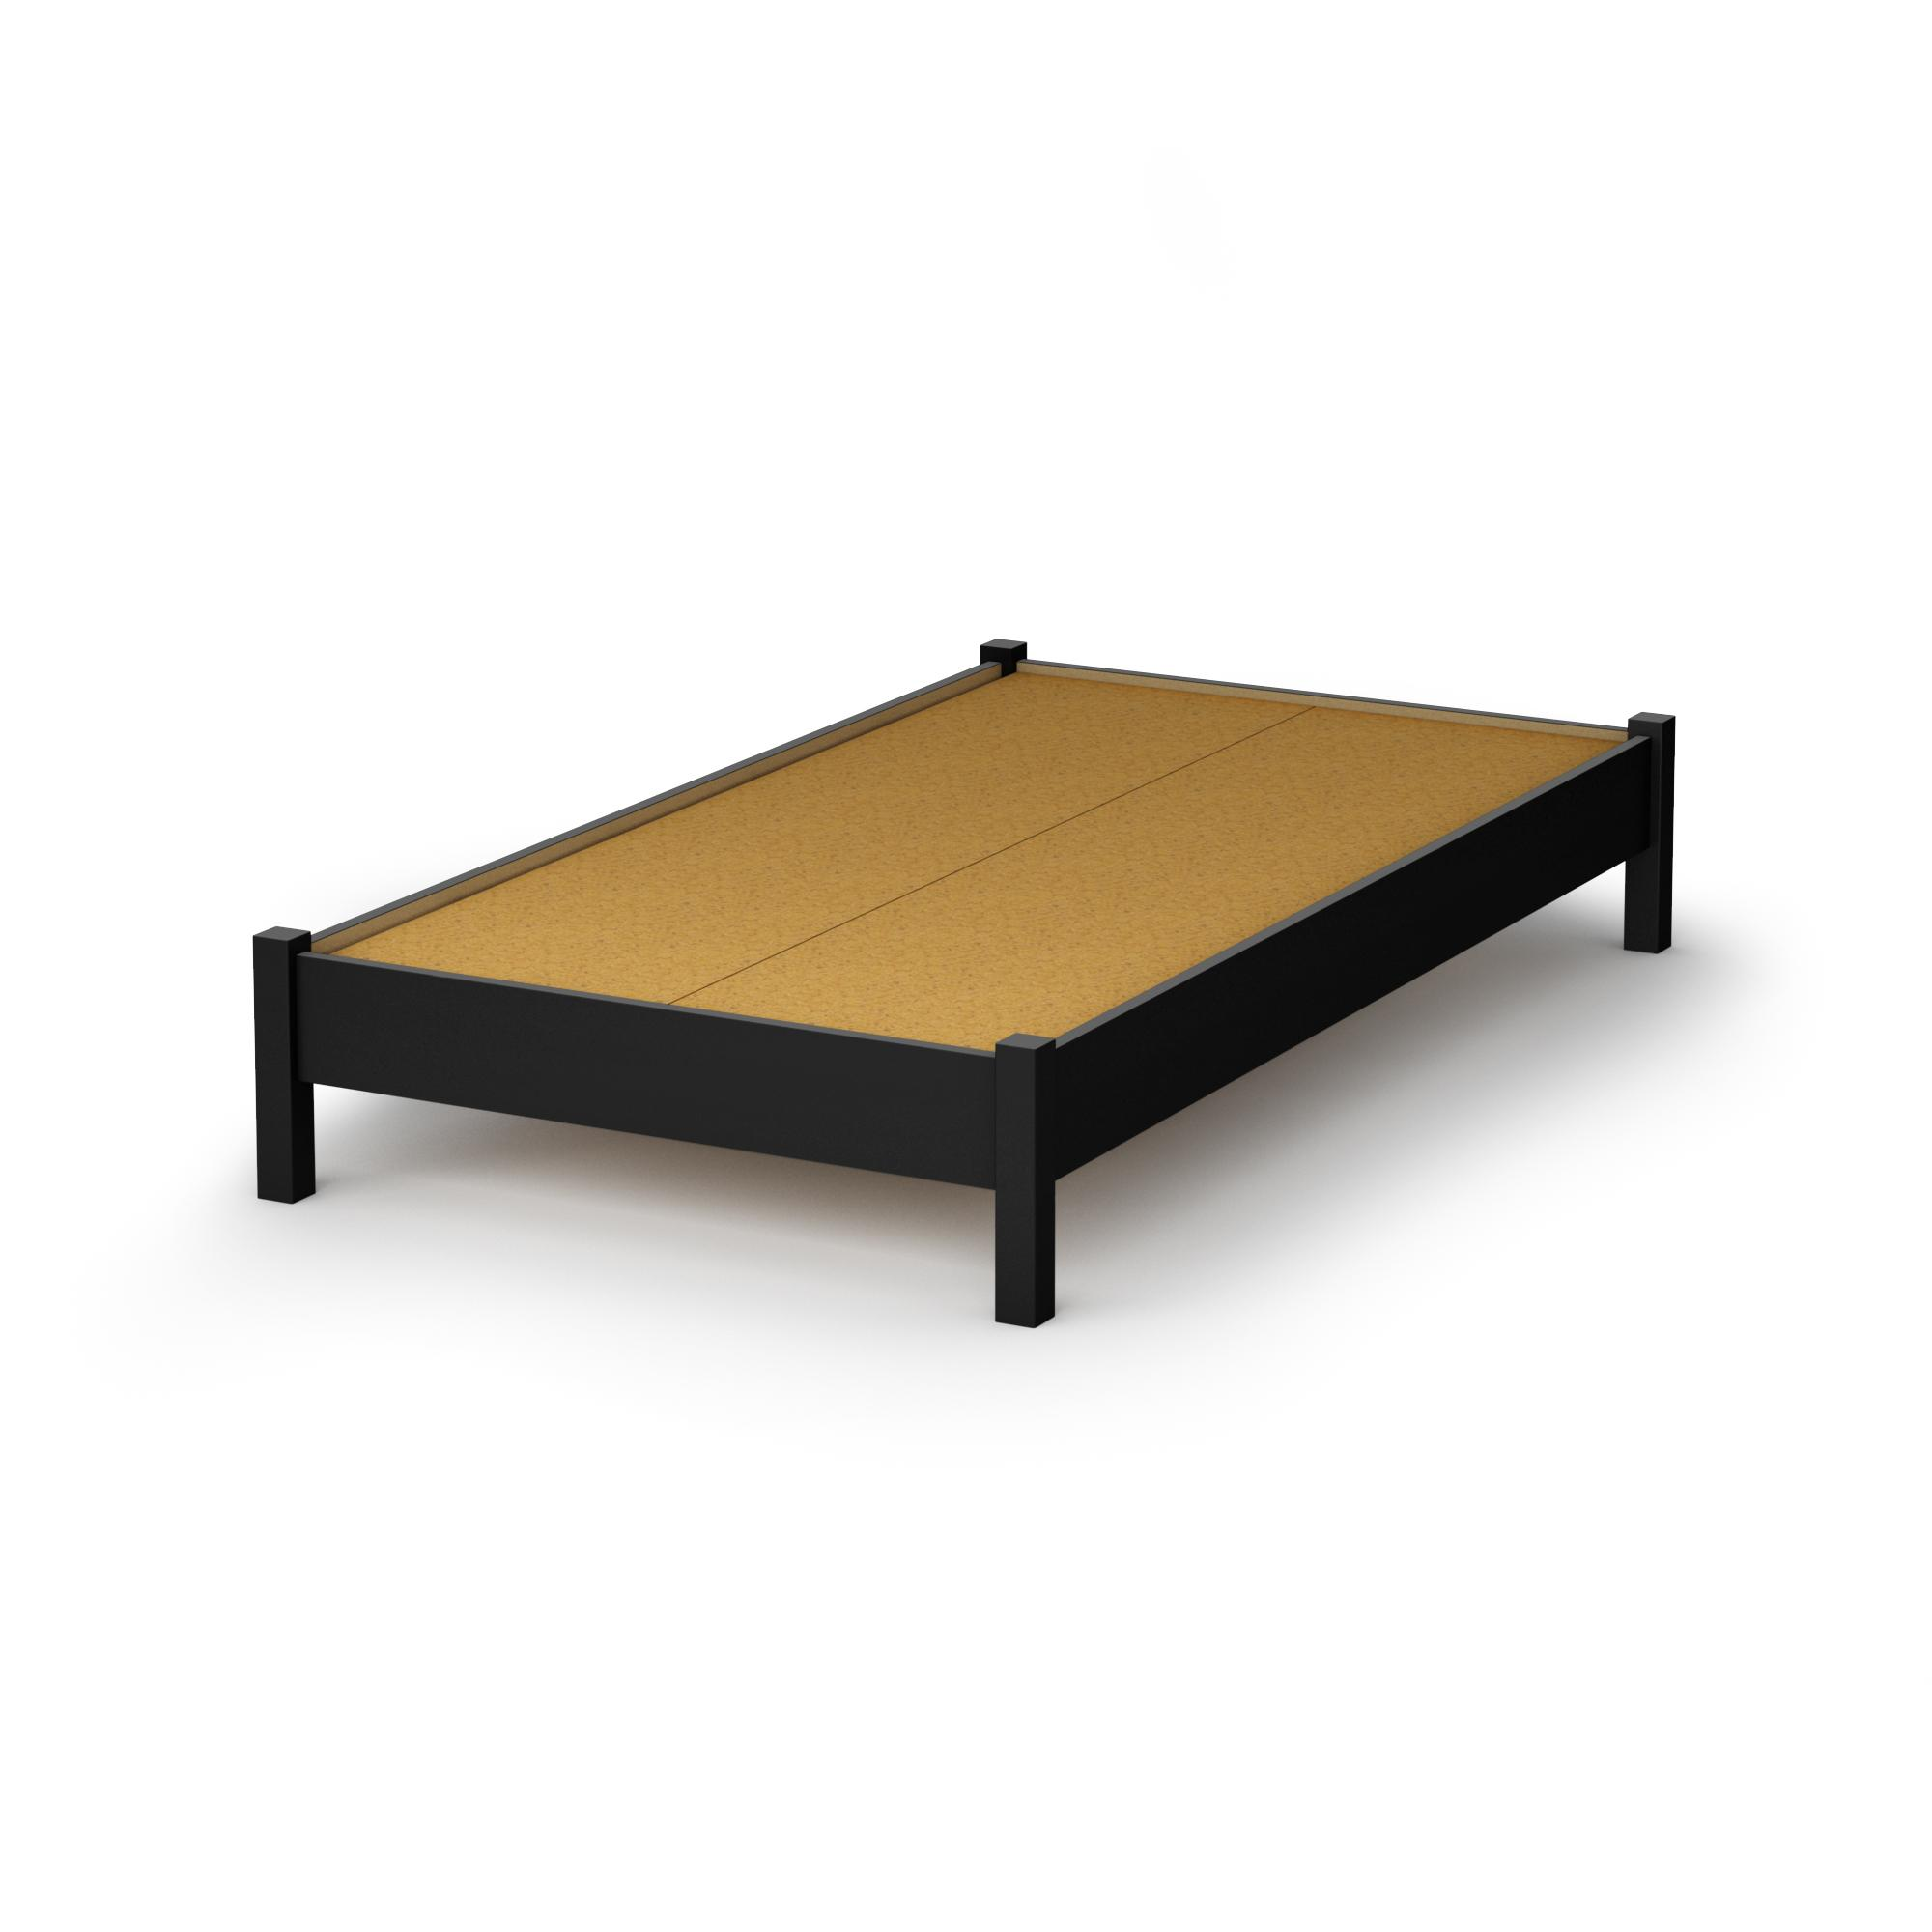 how to make a platform bed frame queen | Woodworking Magazine Online